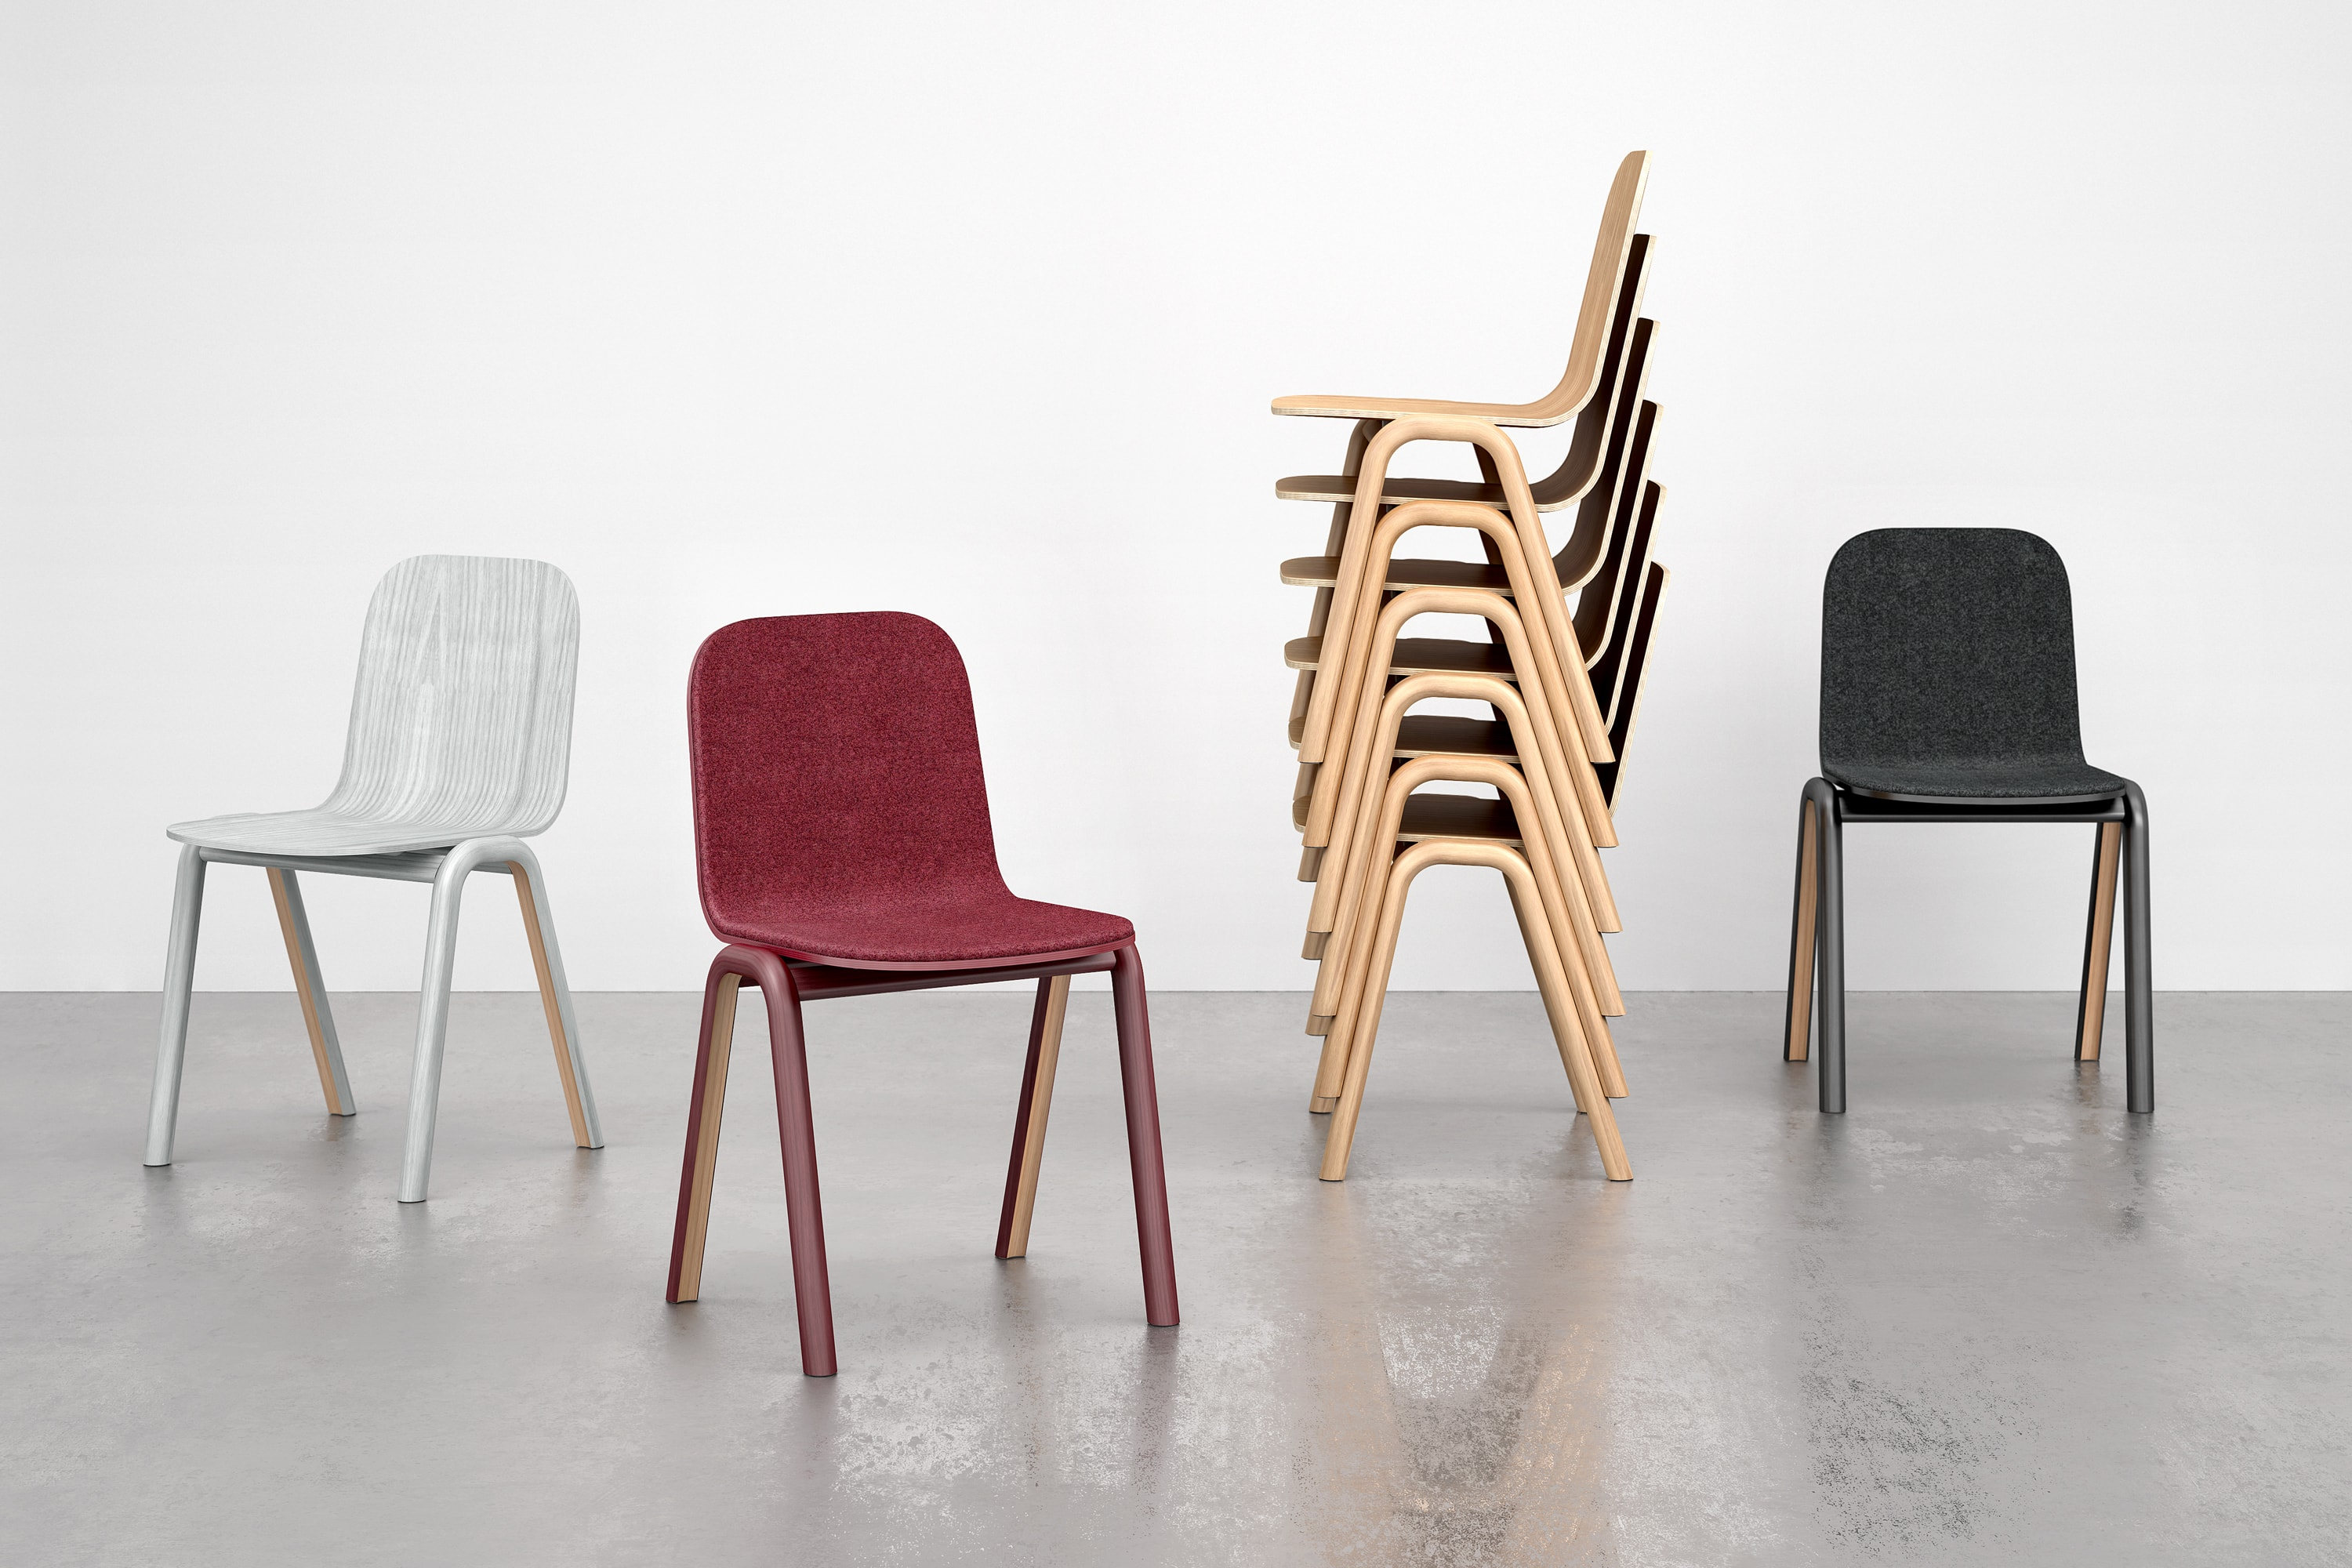 Grey, Burgundy and Black Chairs arranged in different angles. The chairs are made using steam bent wood. There are also several wooden chairs stacked in order to show the function.